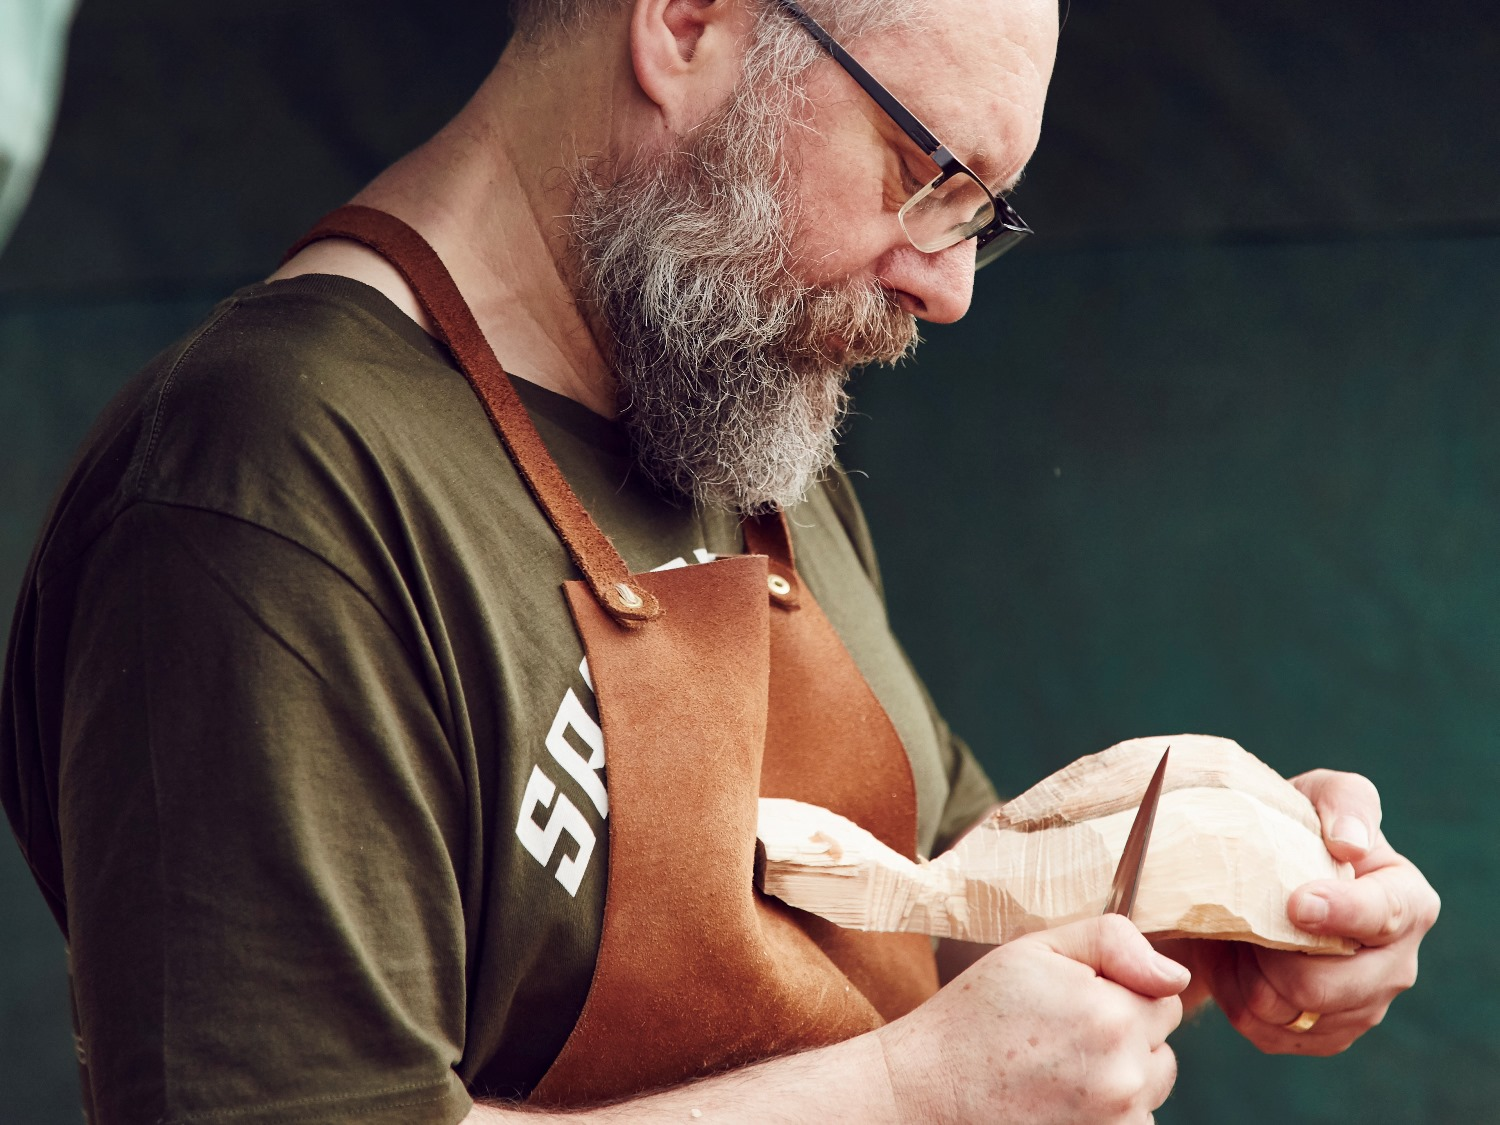 Spoon-carving workshop with Andrew Byam in West Sussex